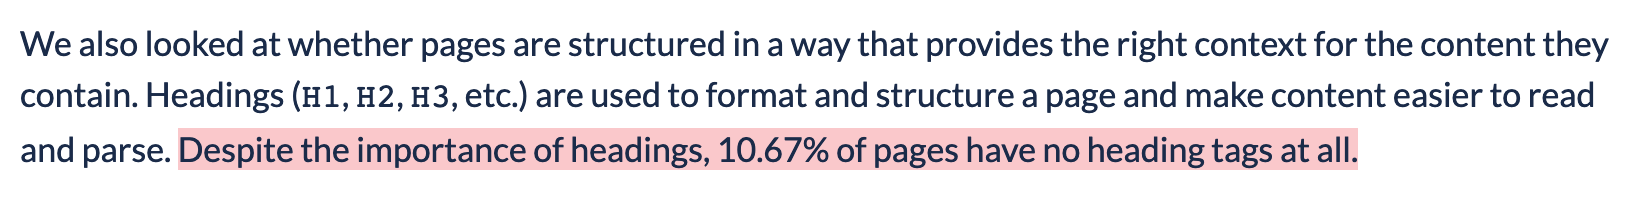 Paragraph of the article with highlighted text: Despite the importance of headings, 10.67% of pages have no heading tags at all.